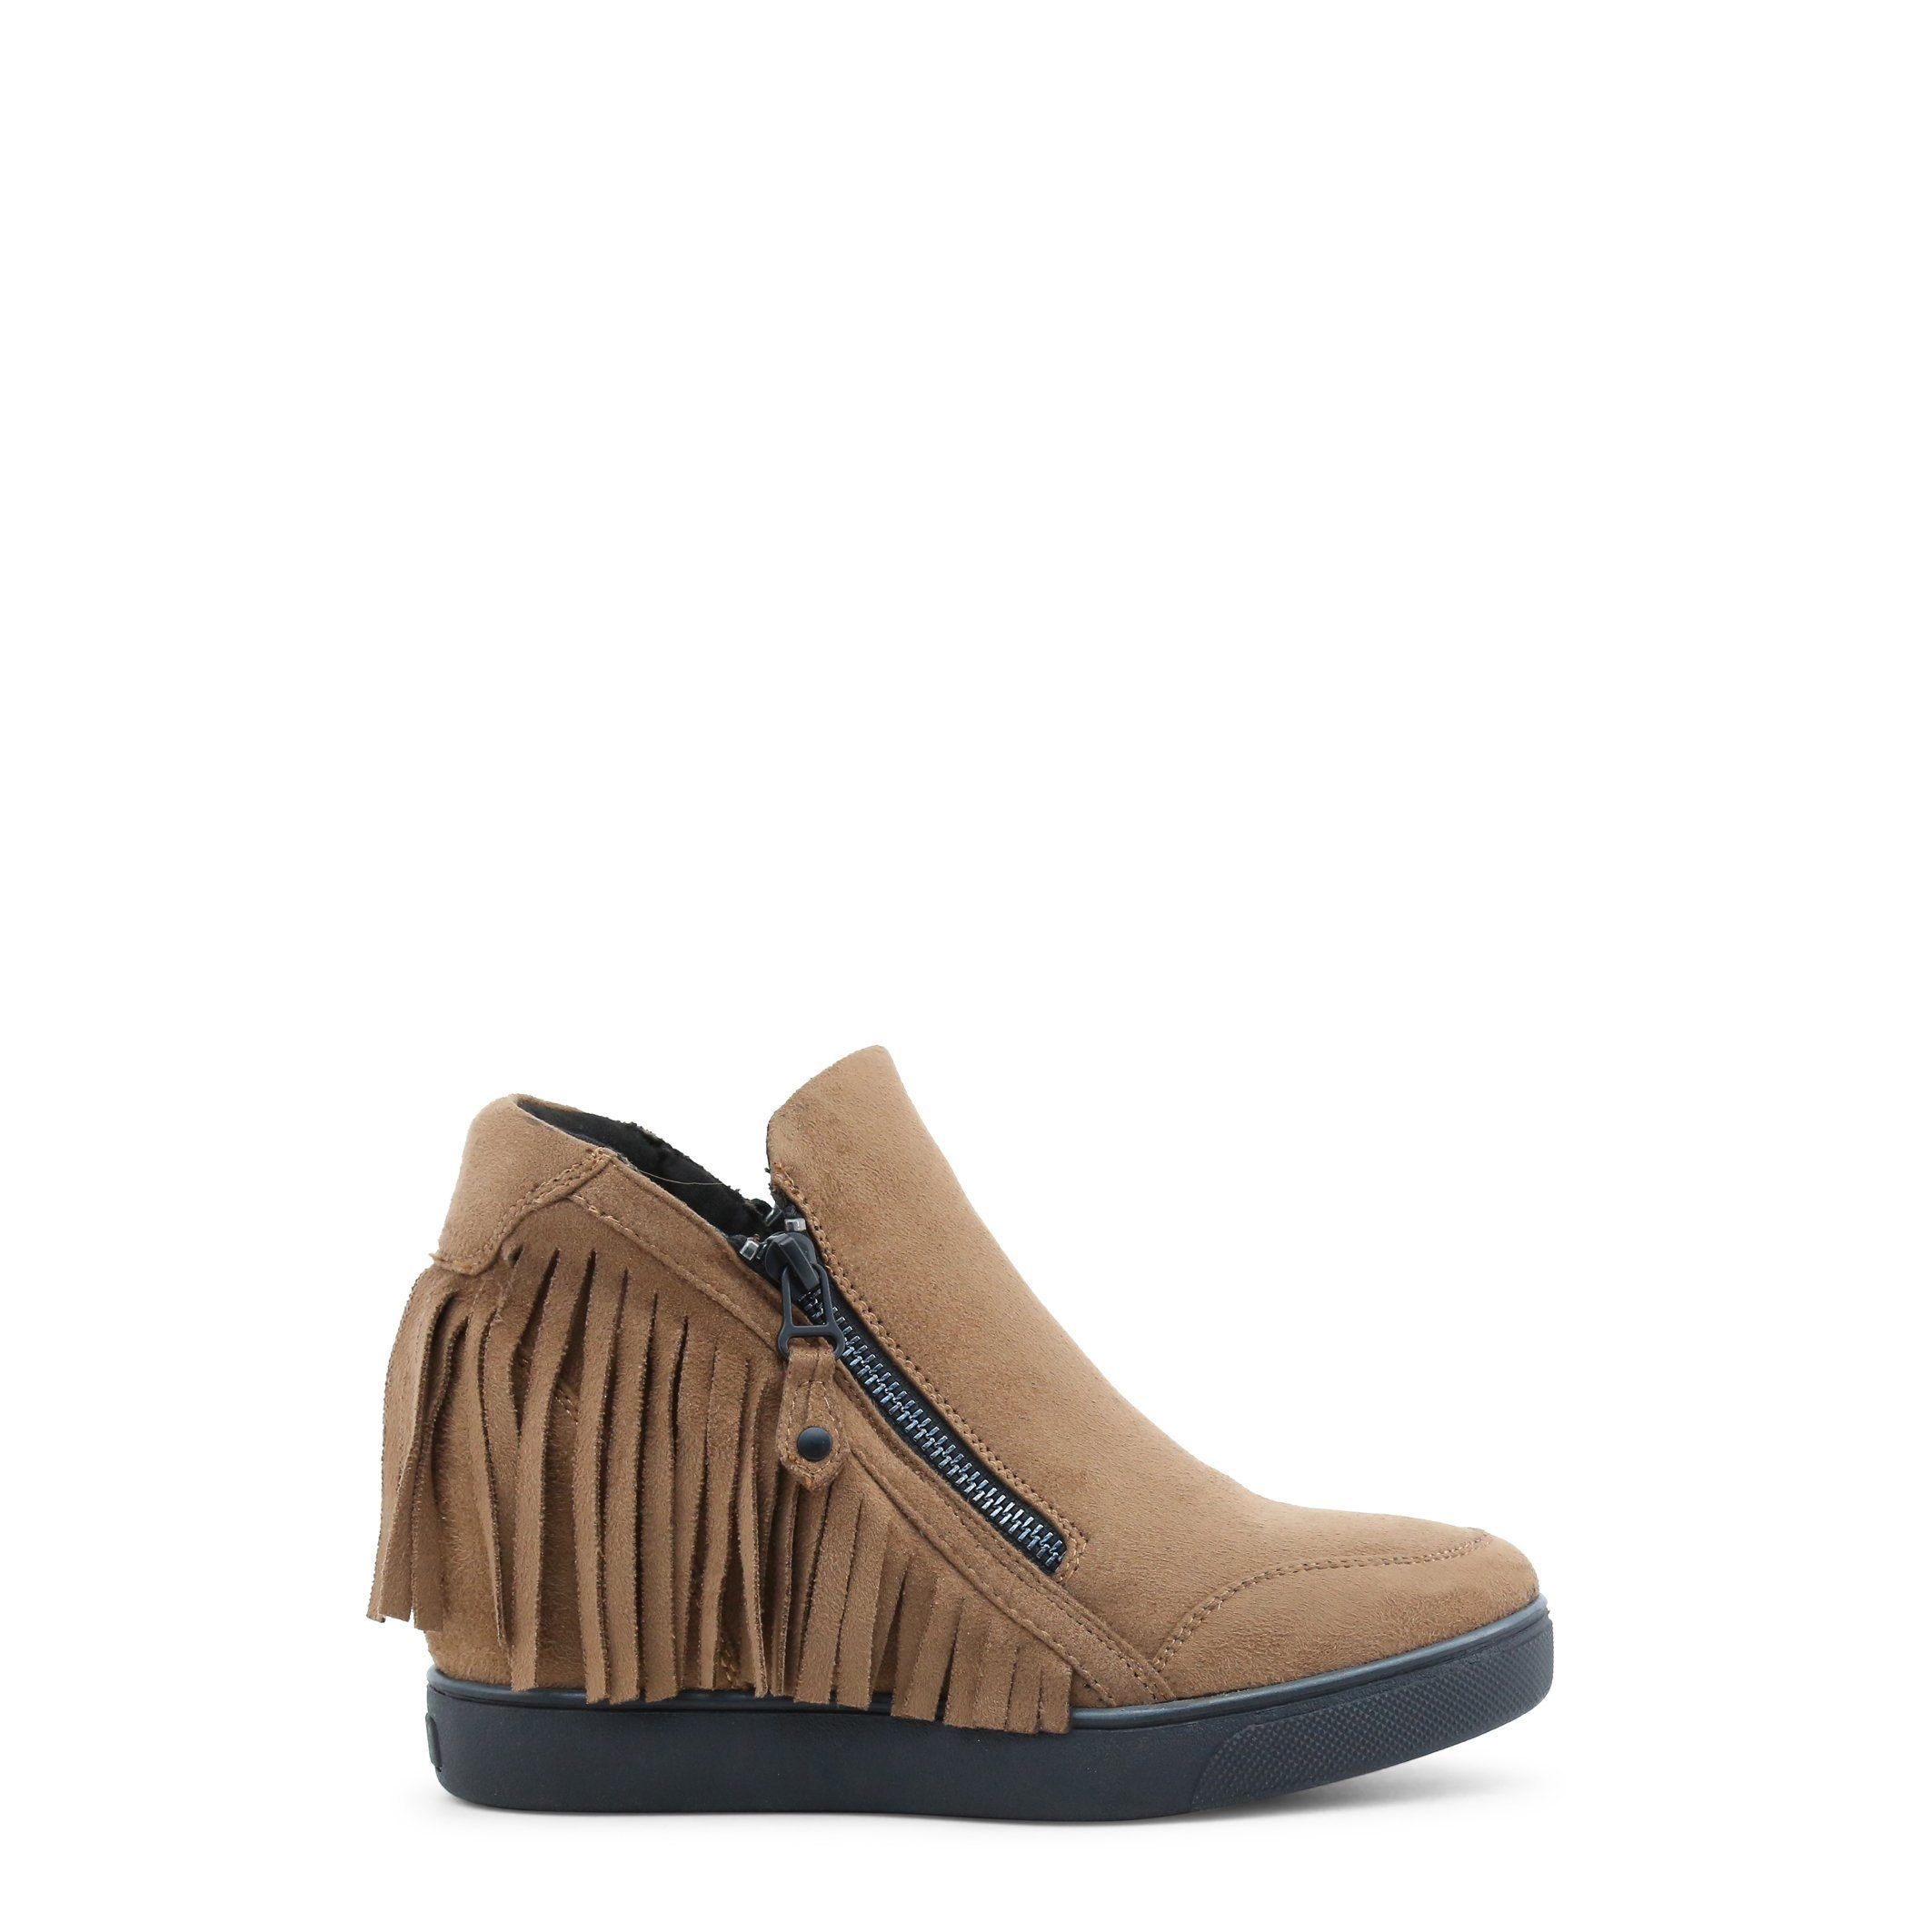 06f47e66f58 Xti Fringe Wedge Ankle Boots In Faux Suede Leather Tan Sizes 9-11 On SALE -  46272